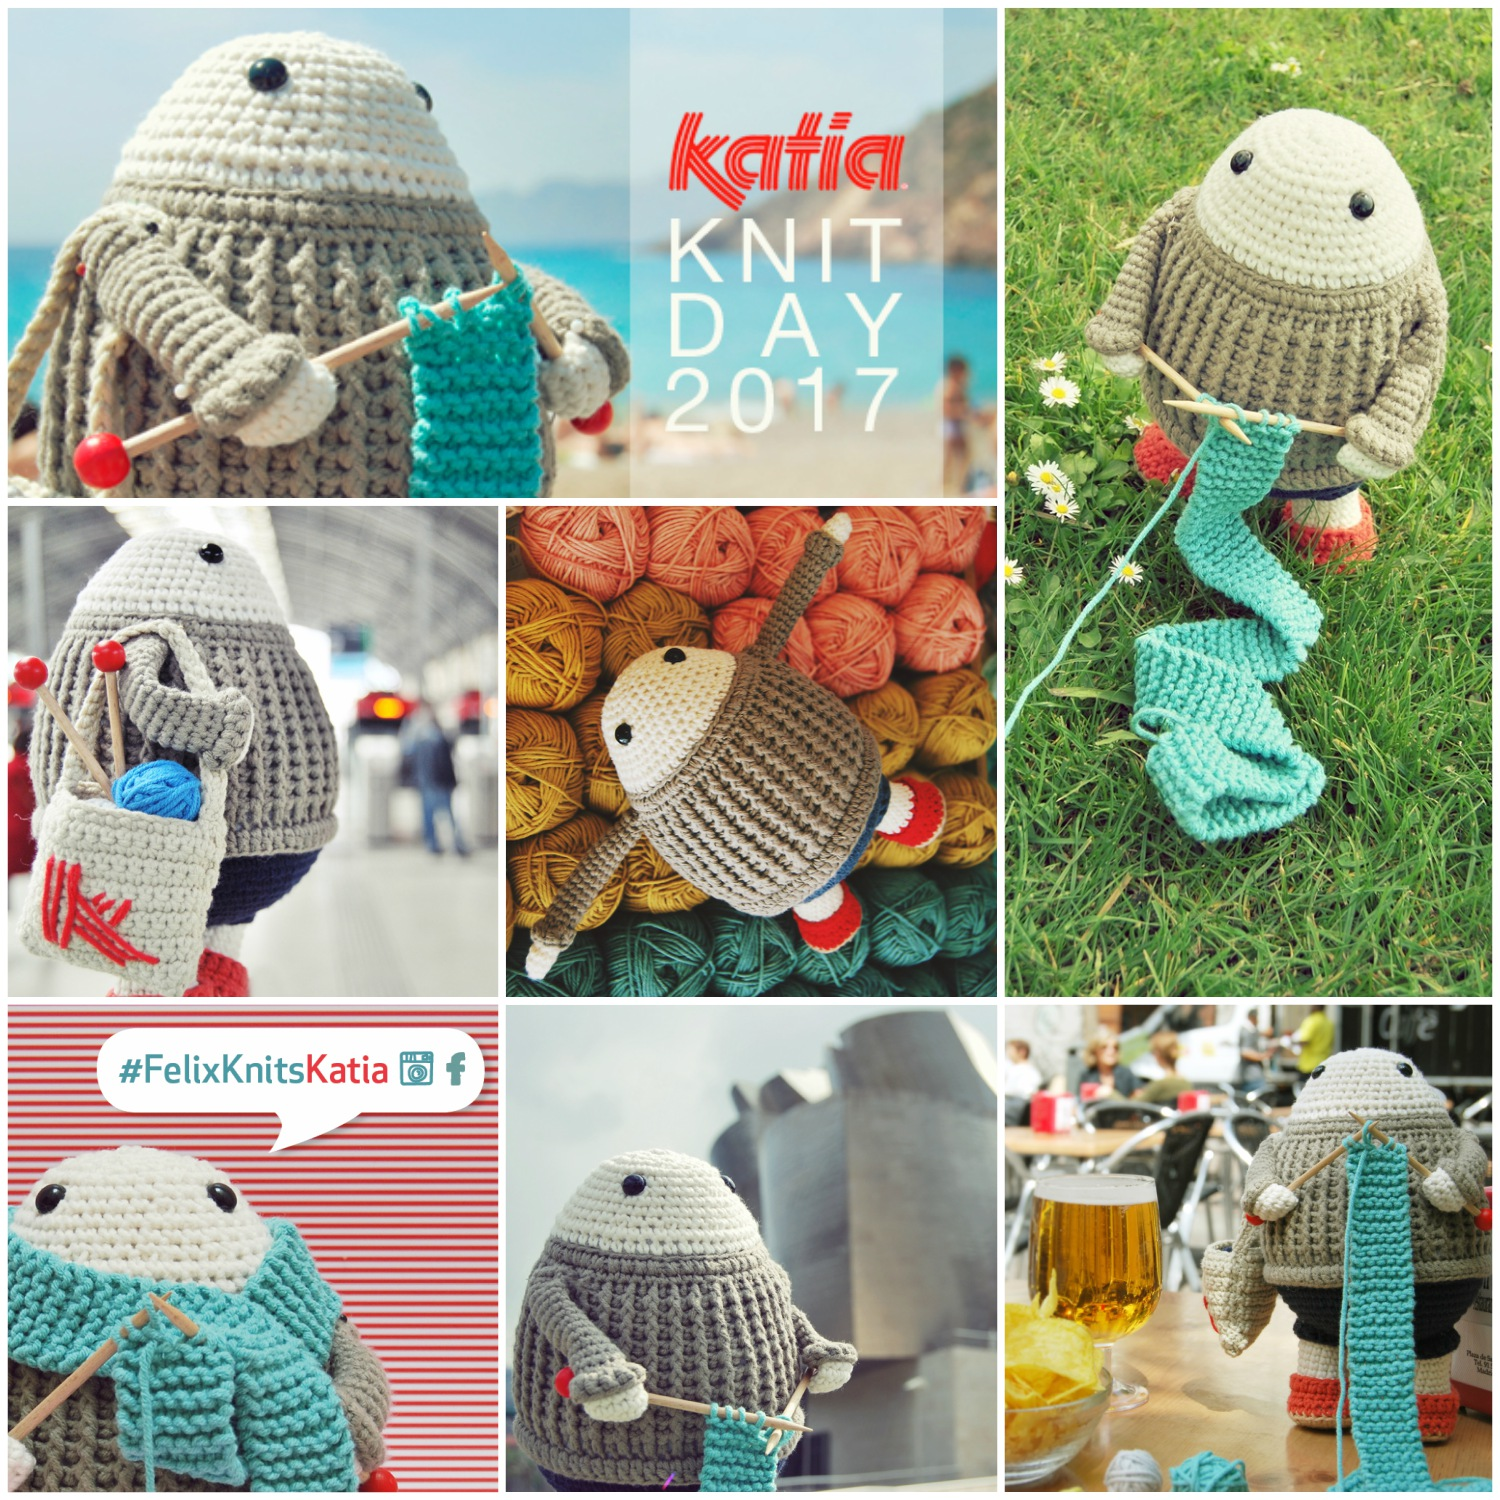 Felixknitskatia competition photograph felix the happy knitter in important you can personalise your own little felix by using other colours or other katia yarns from our catalogue and even creating your own accessories bankloansurffo Images